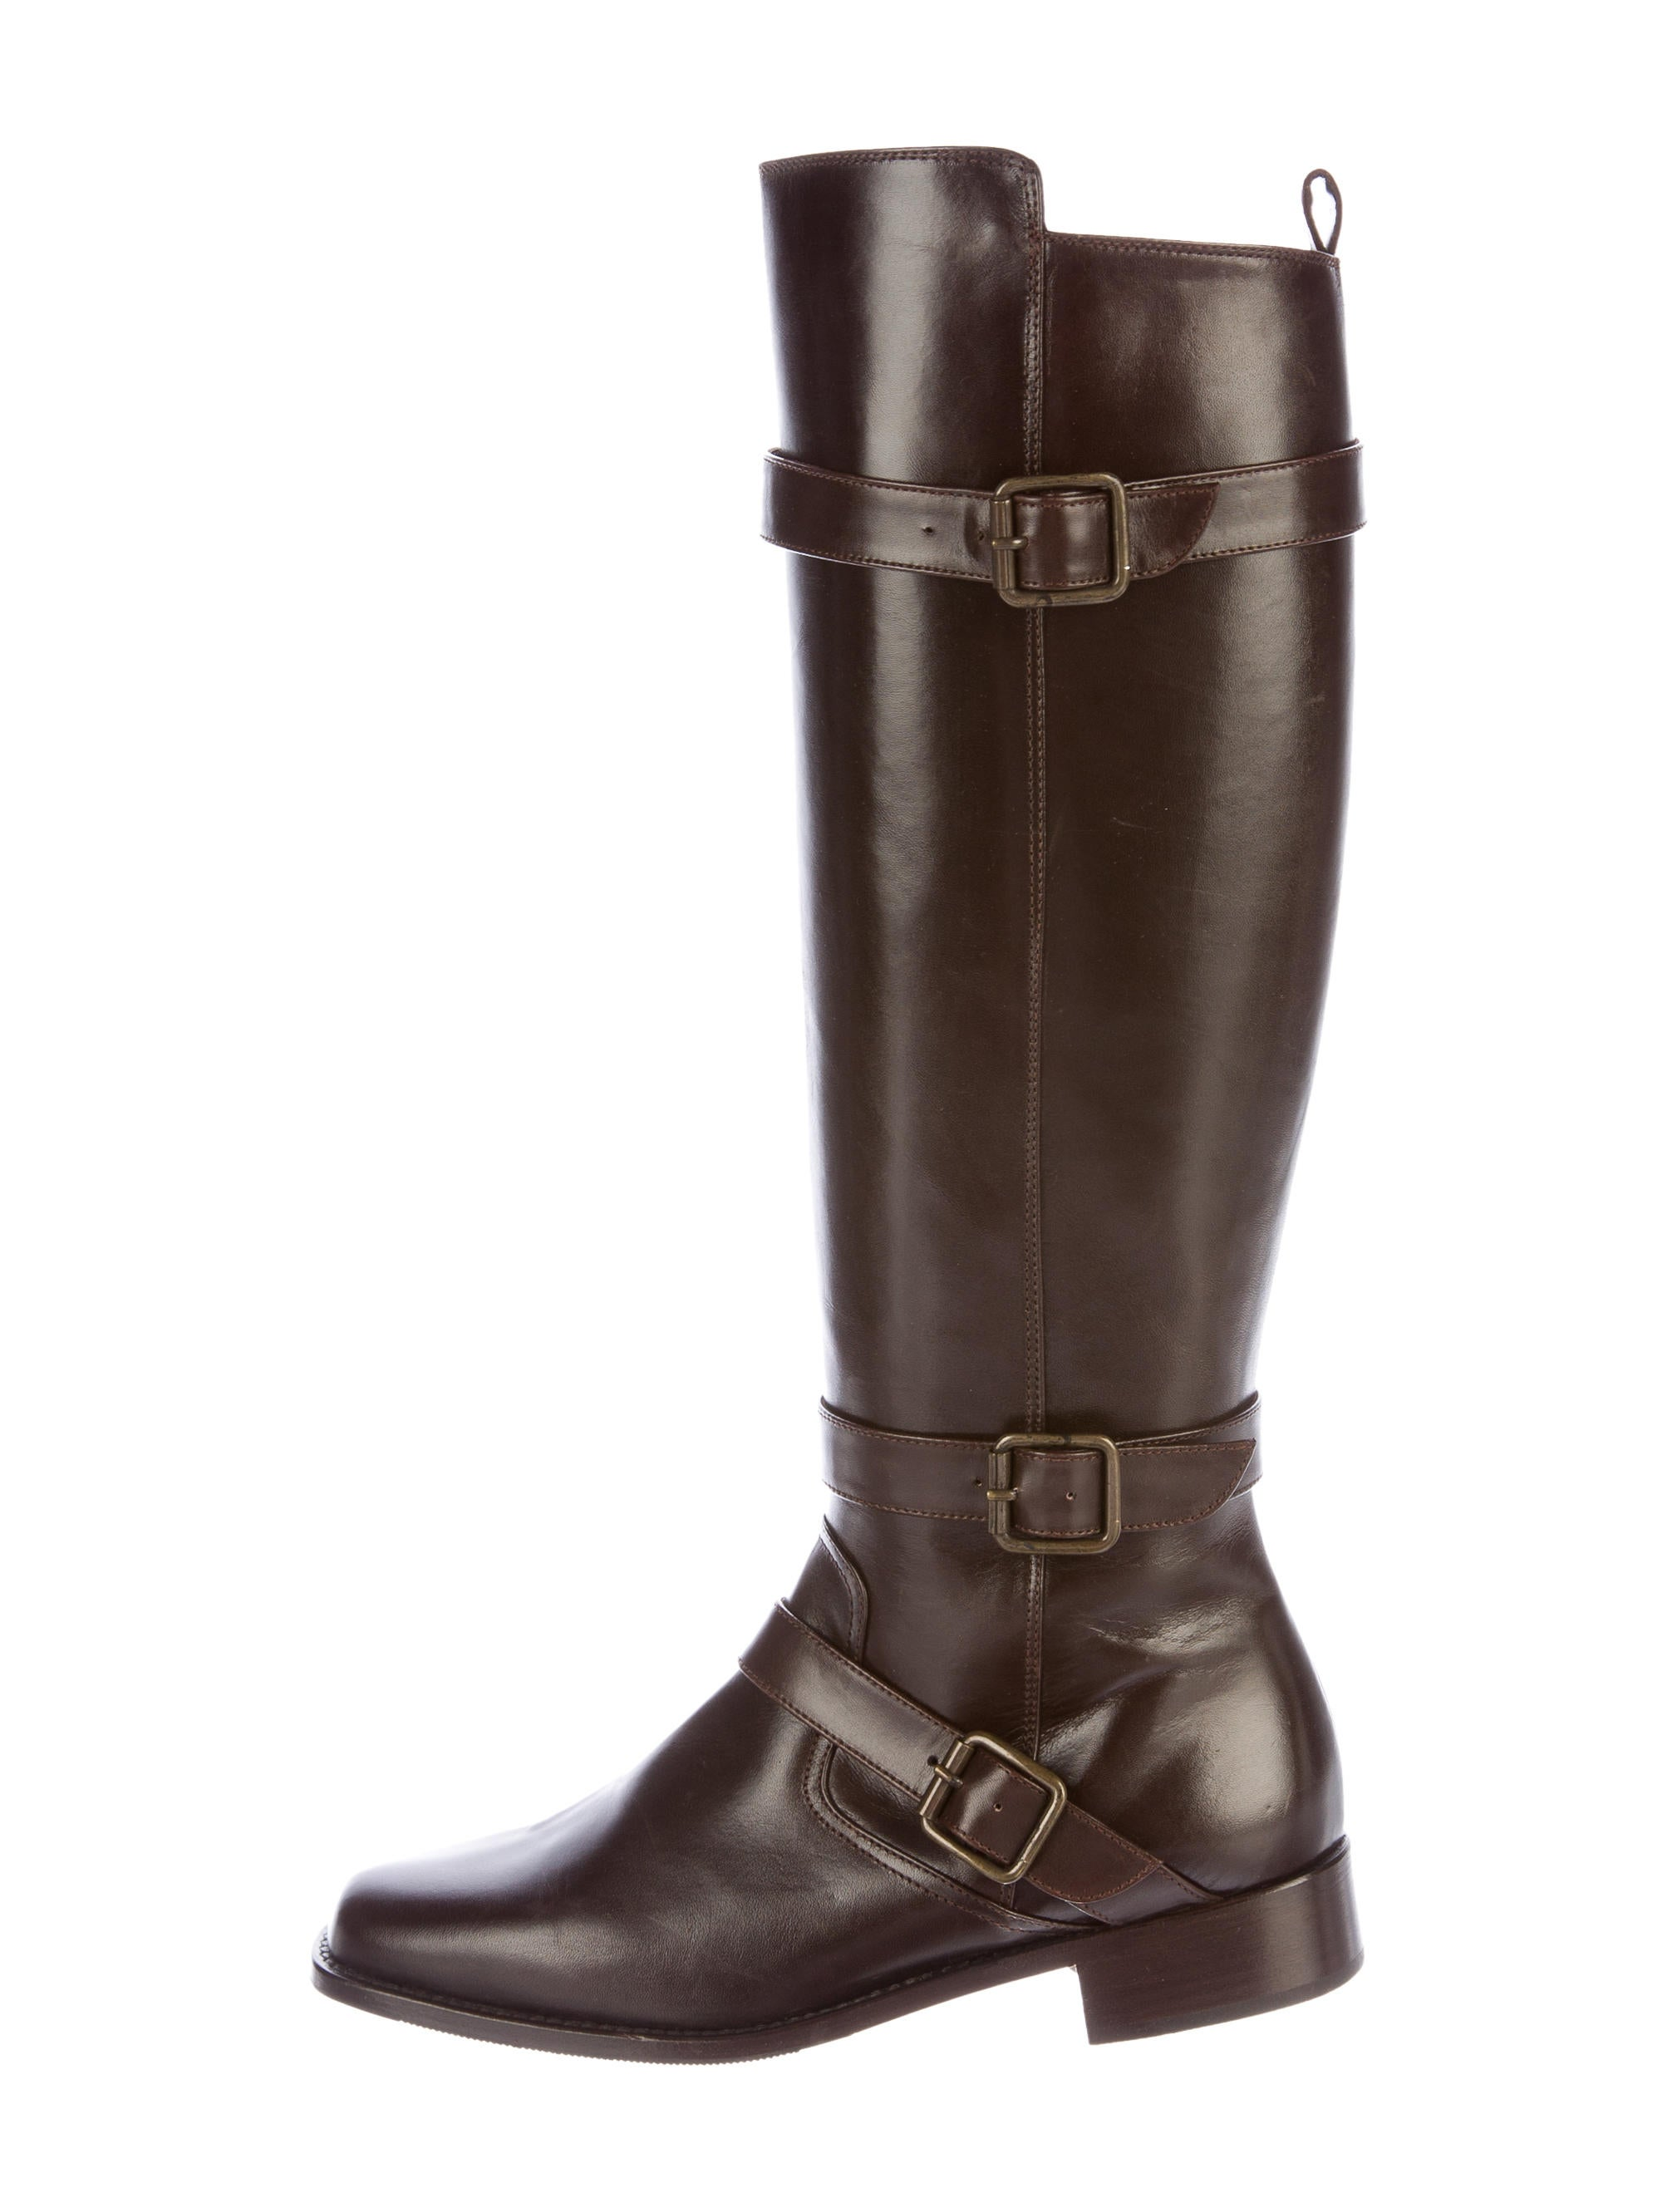 manolo blahnik buckle accented knee high boots shoes